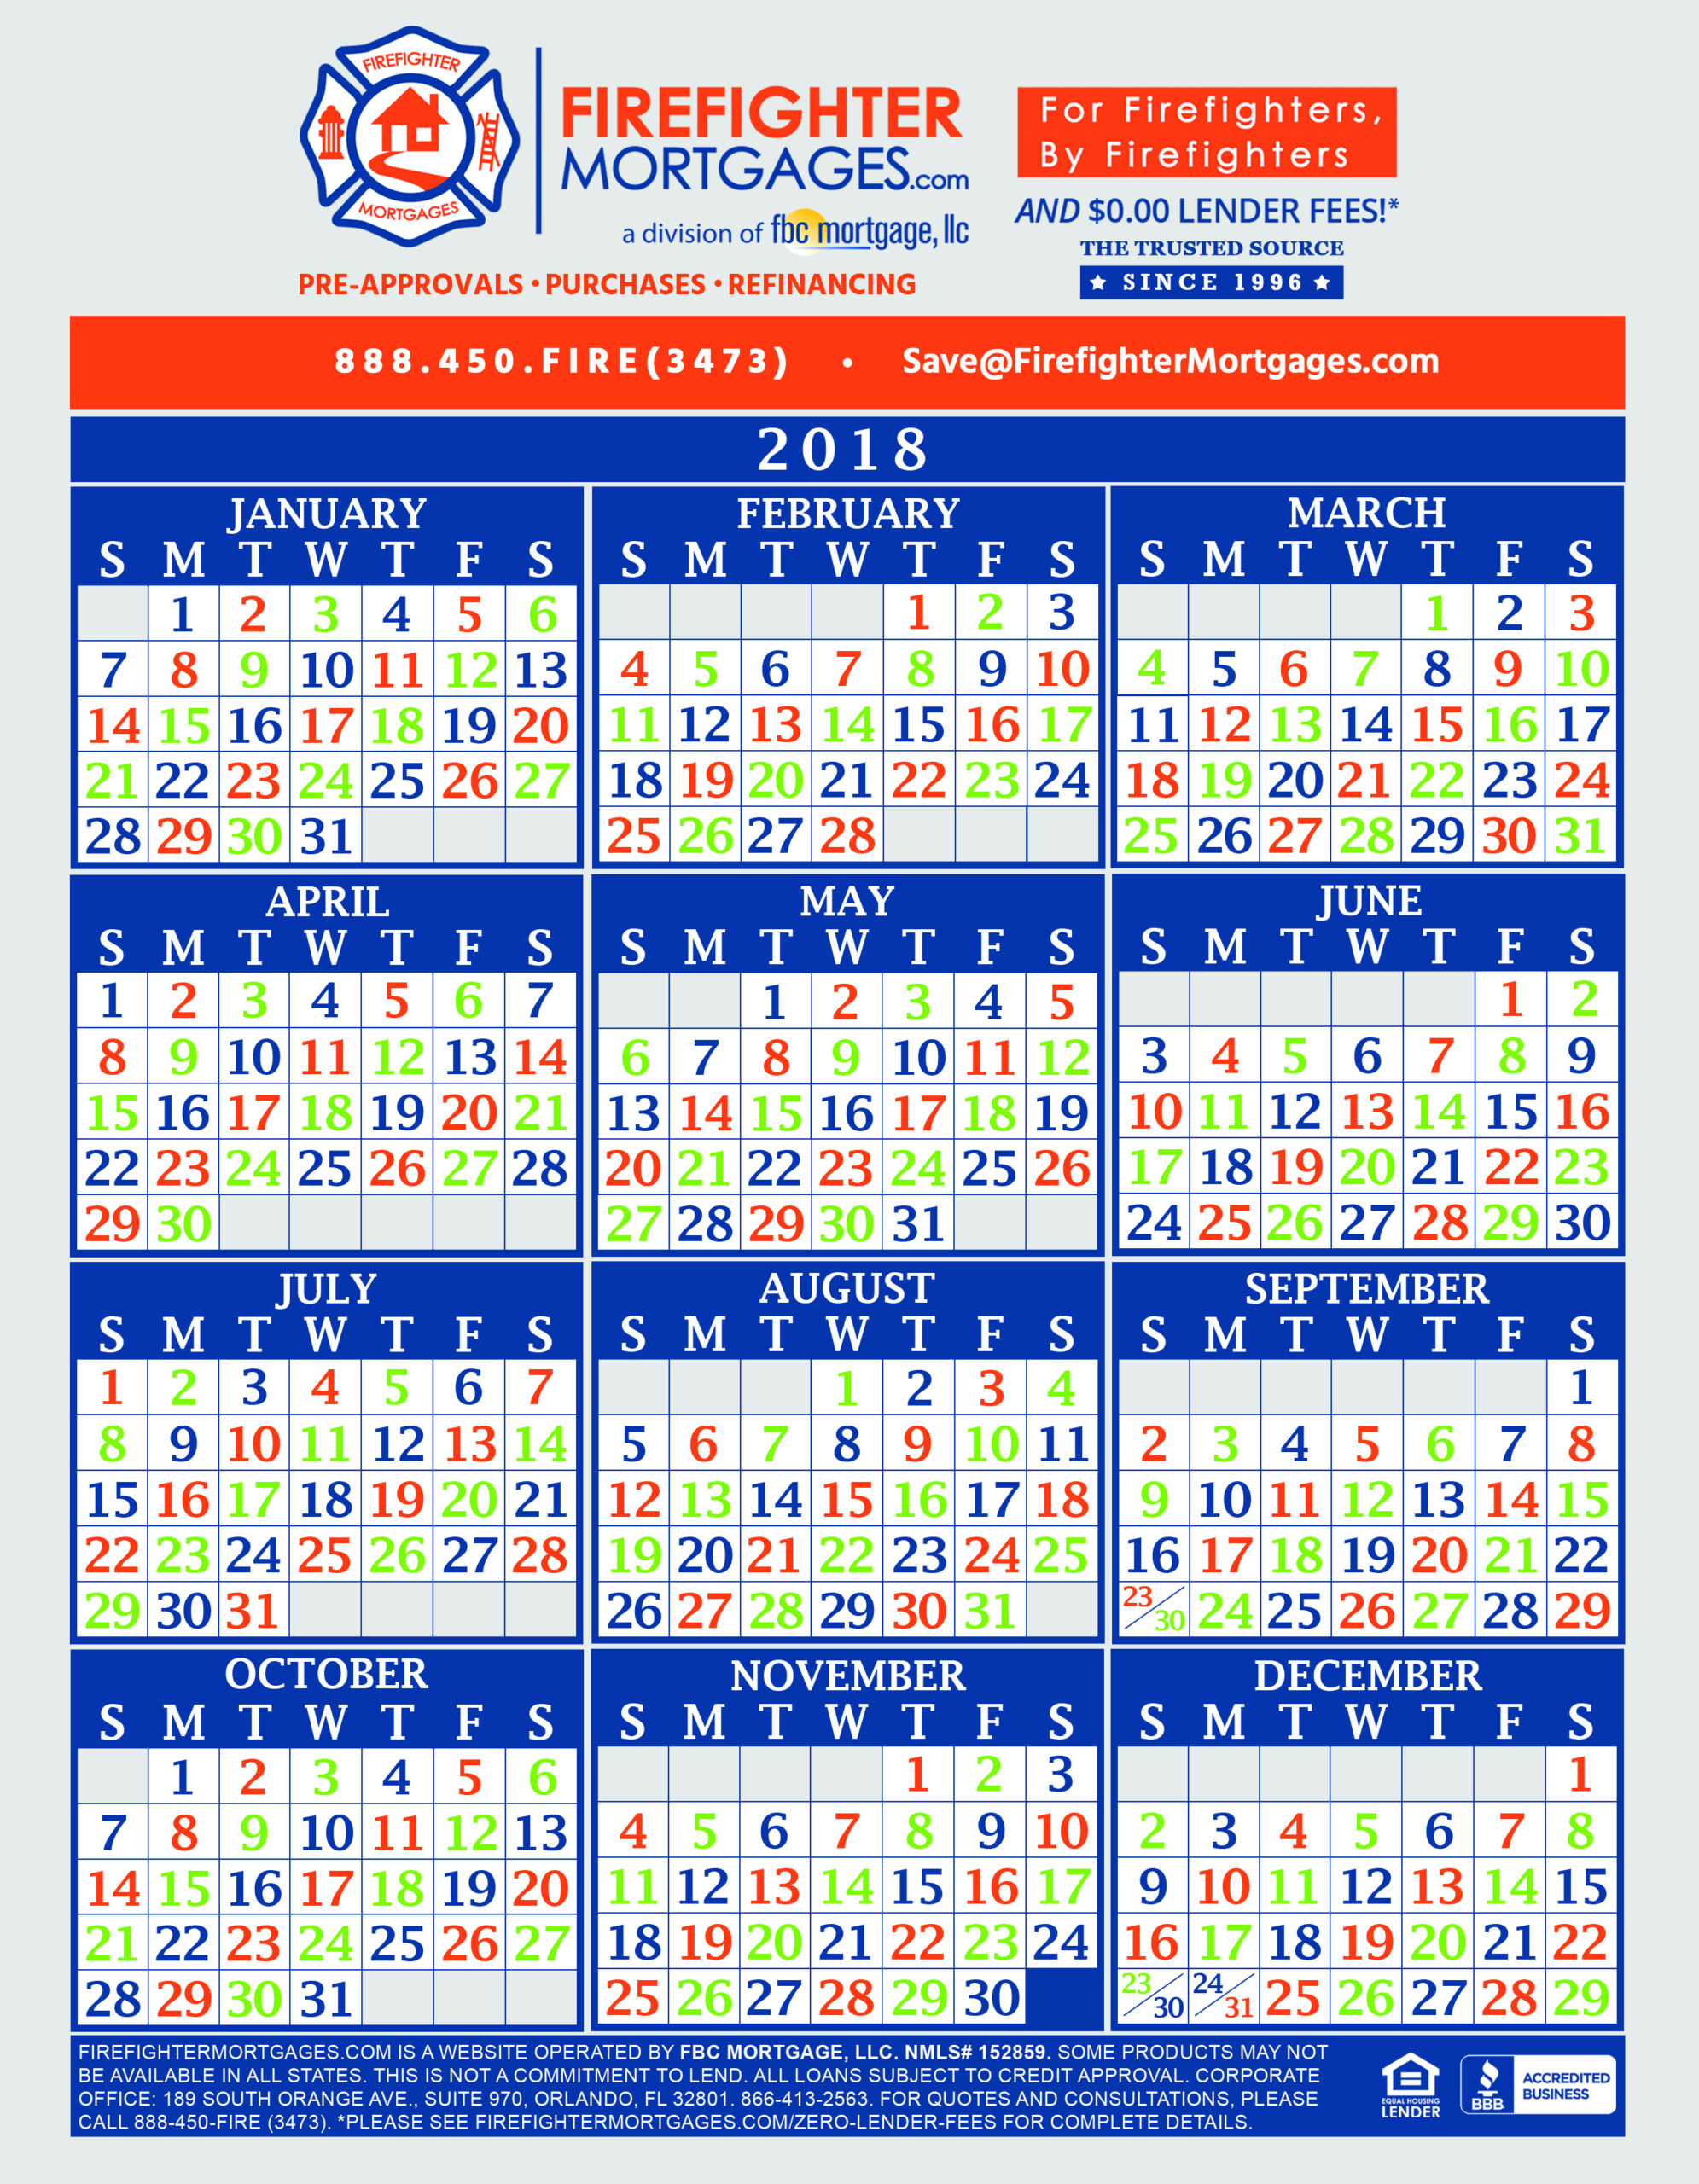 Printable 2021 Shift Calendars For Firefighters